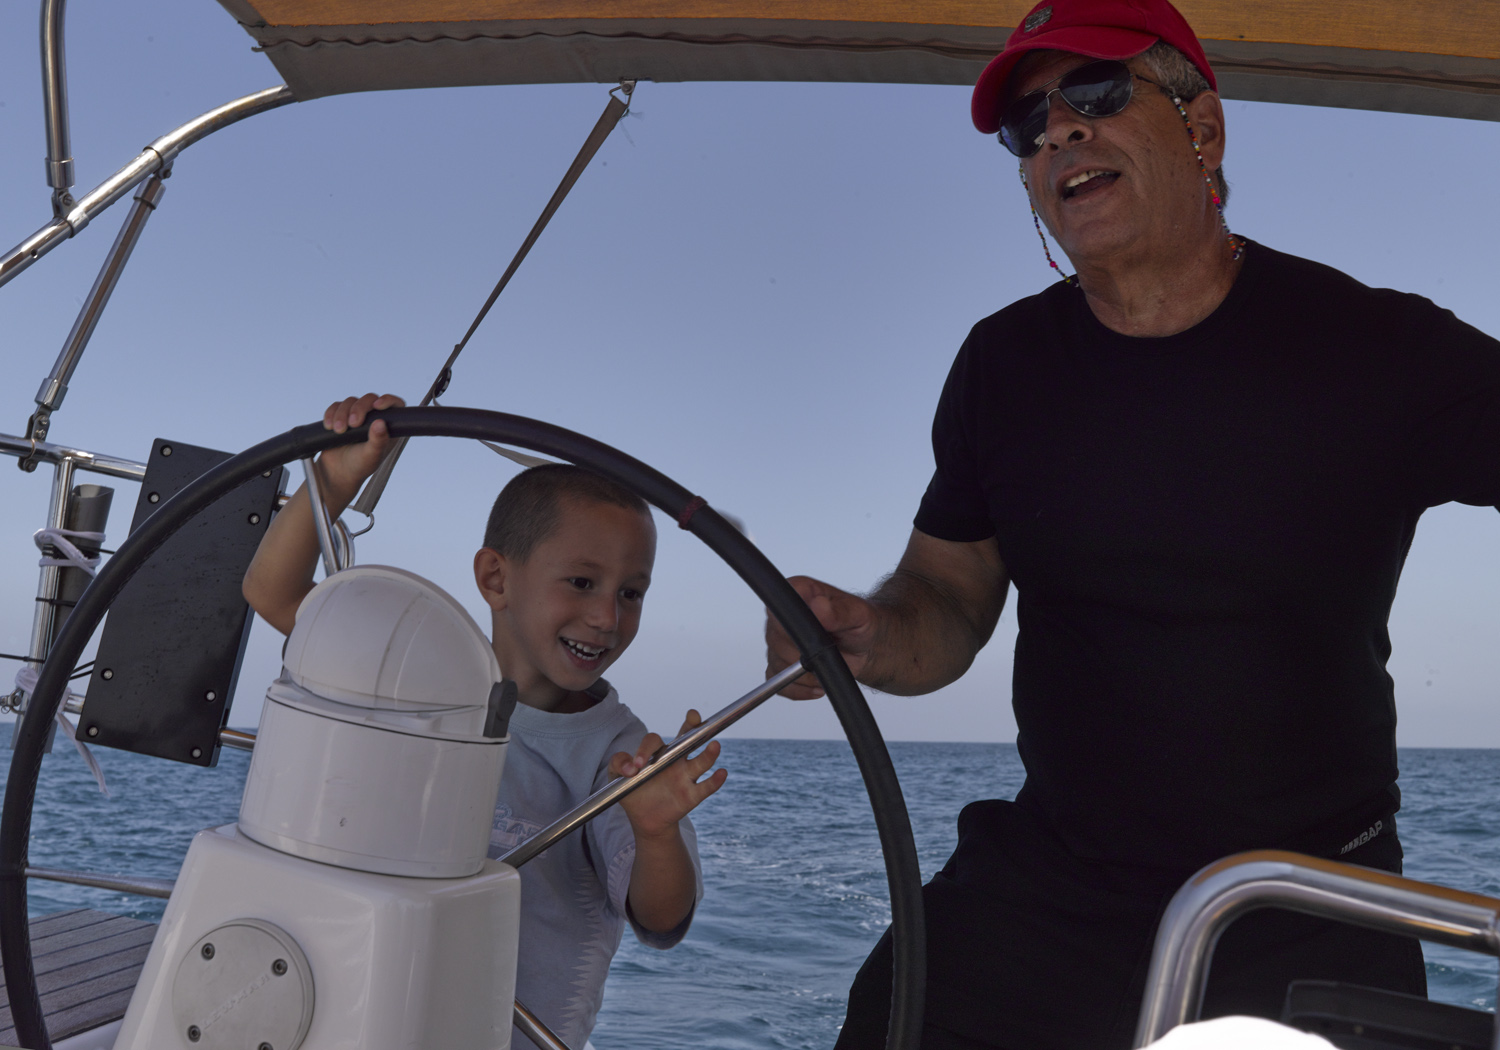 Sailing with people from Netiv Haasara - Tel Aviv, 2014